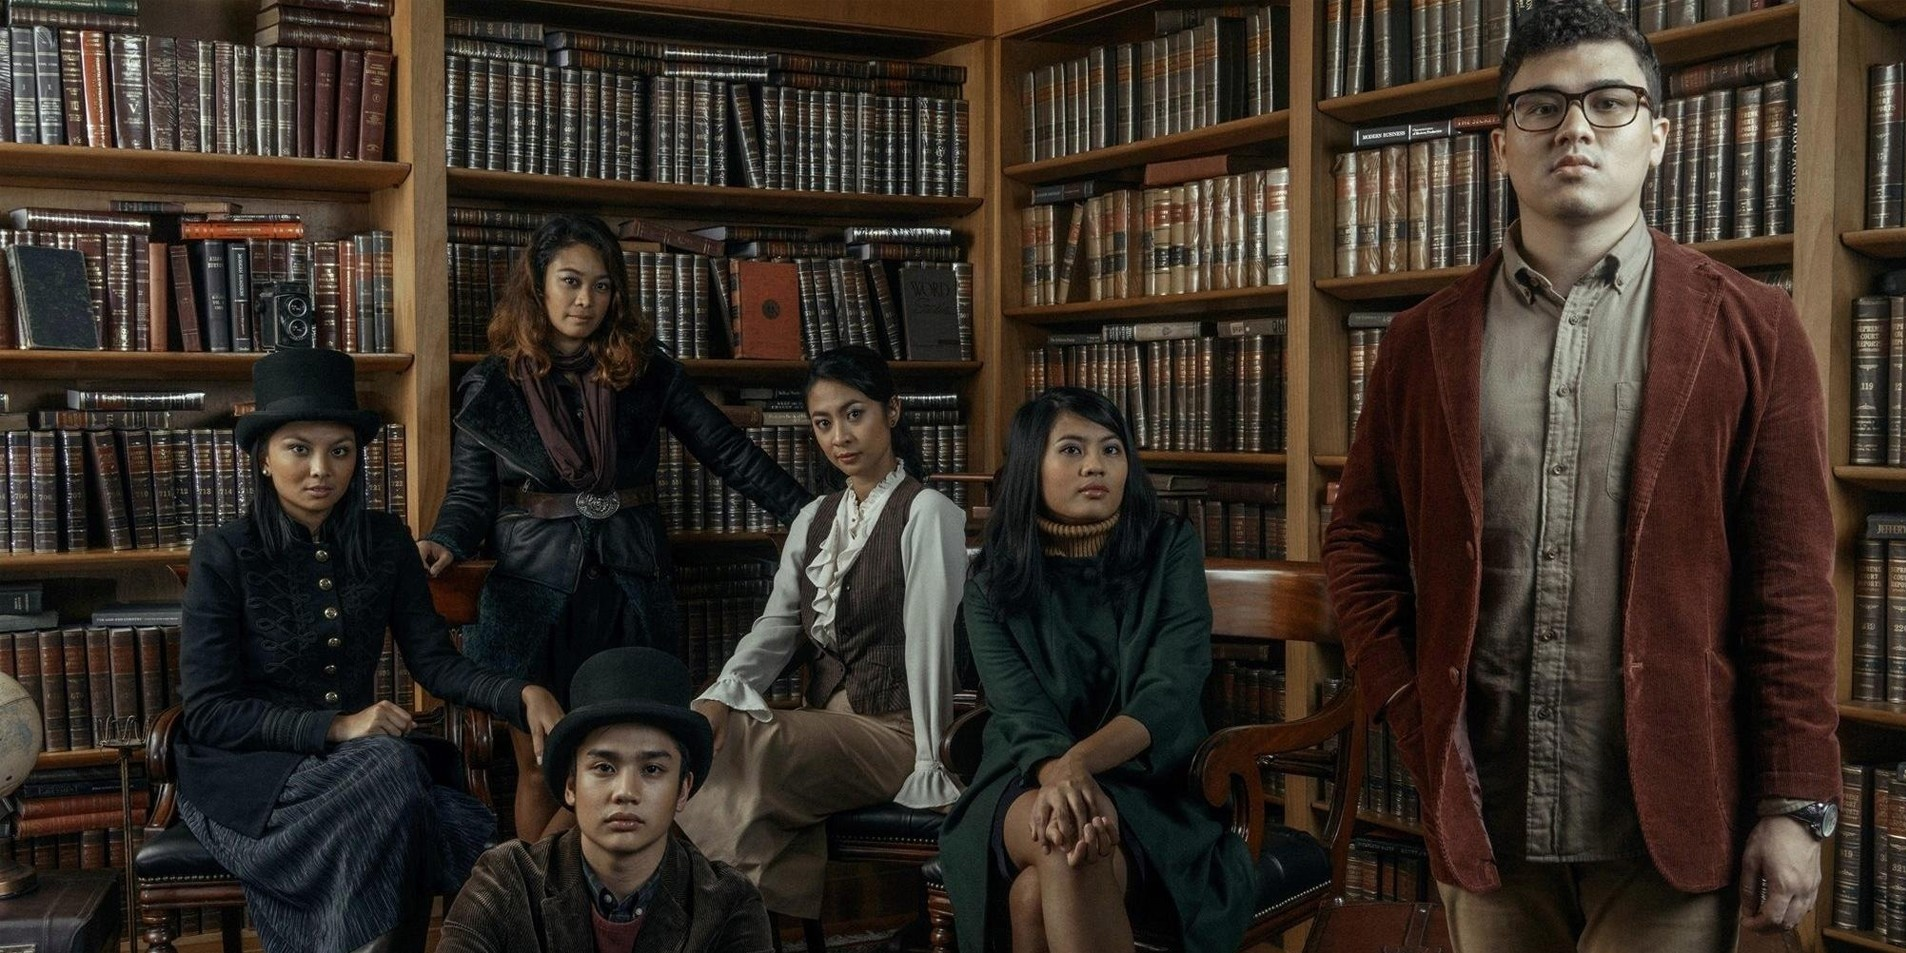 The Ransom Collective to perform at Summer Us, Now Music & Art Festival in Indonesia